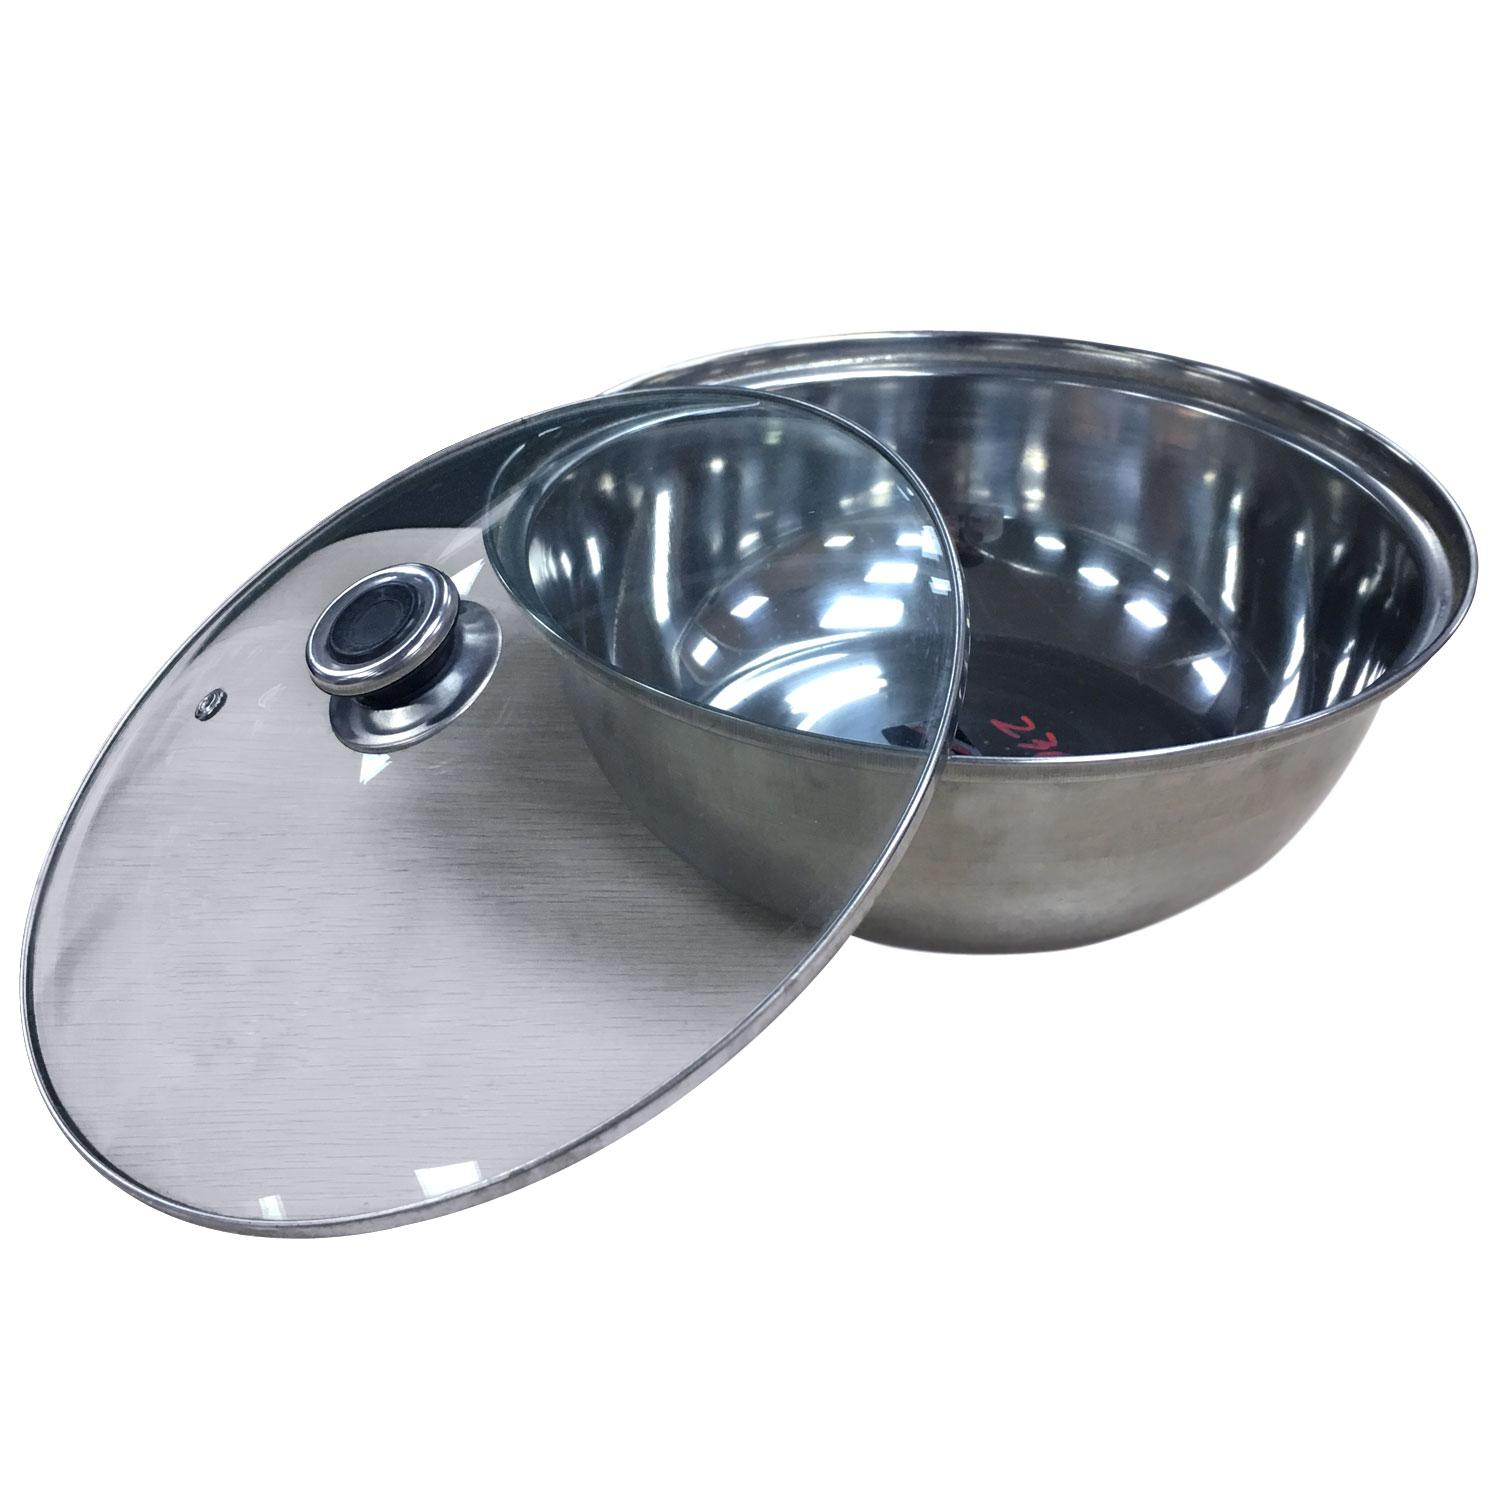 Food Warmer Tray W/ Glass Cover (27cm Round) - 81128 By Homedeliveryph.